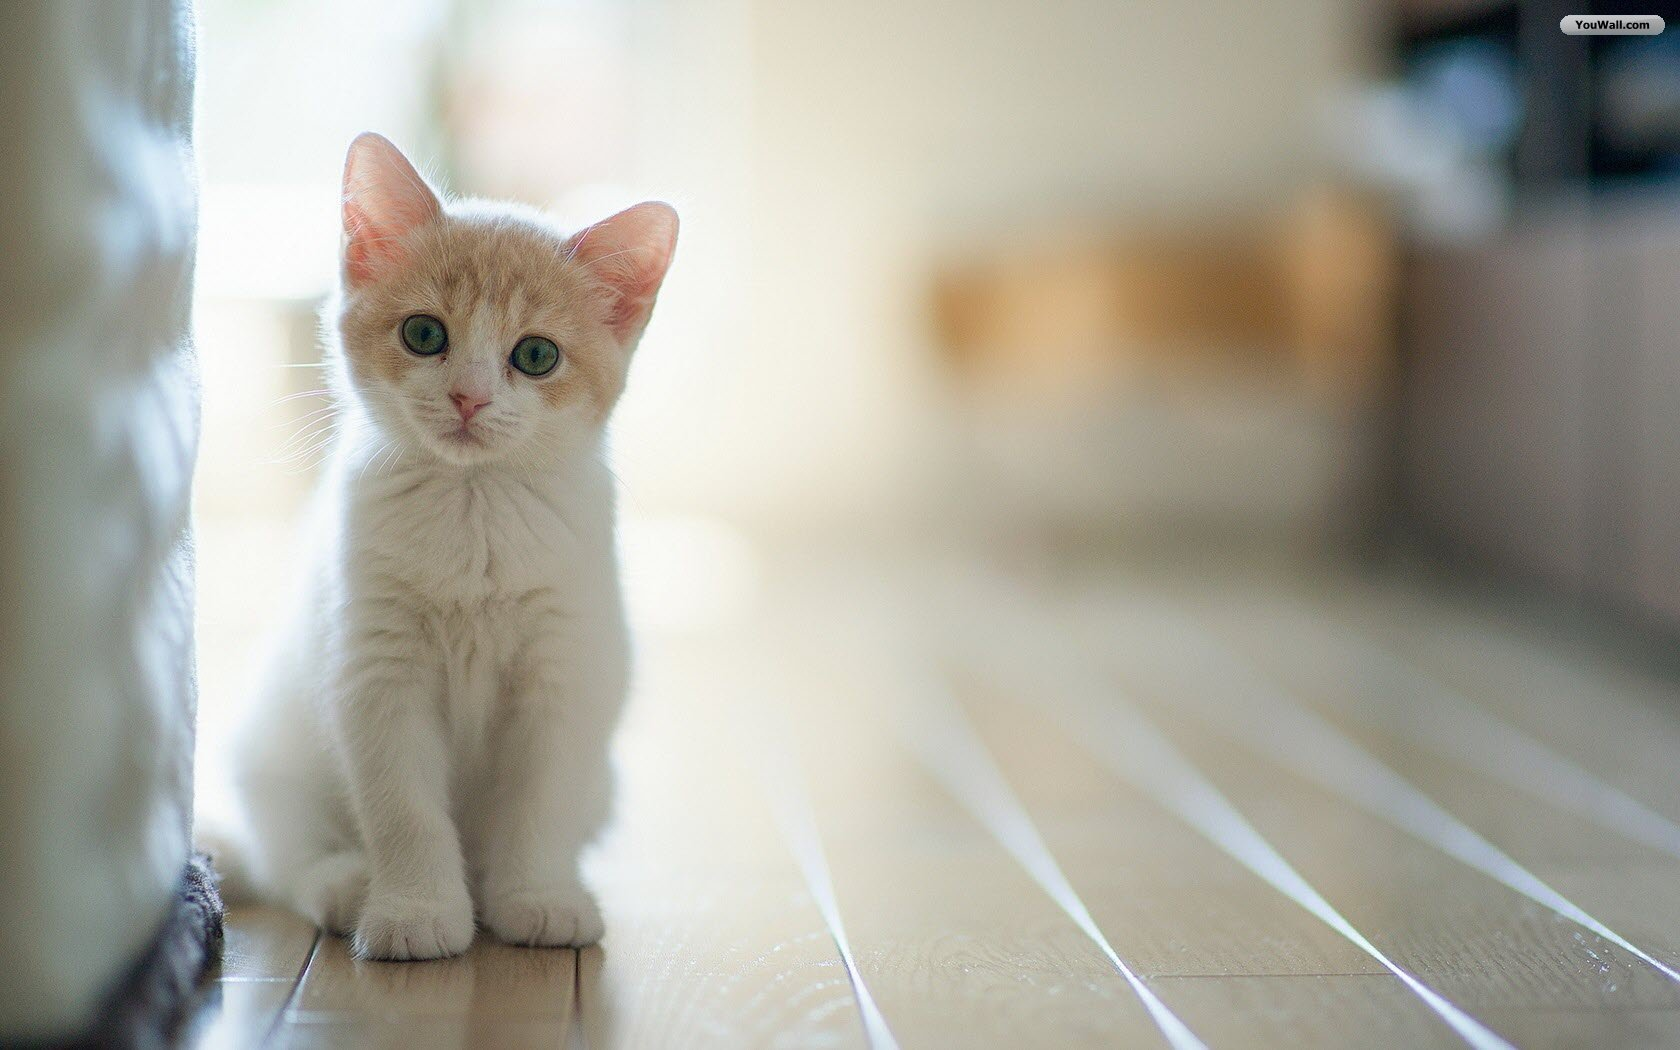 Cute Cat Wallpapers  Android Apps on Google Play 1680x1050